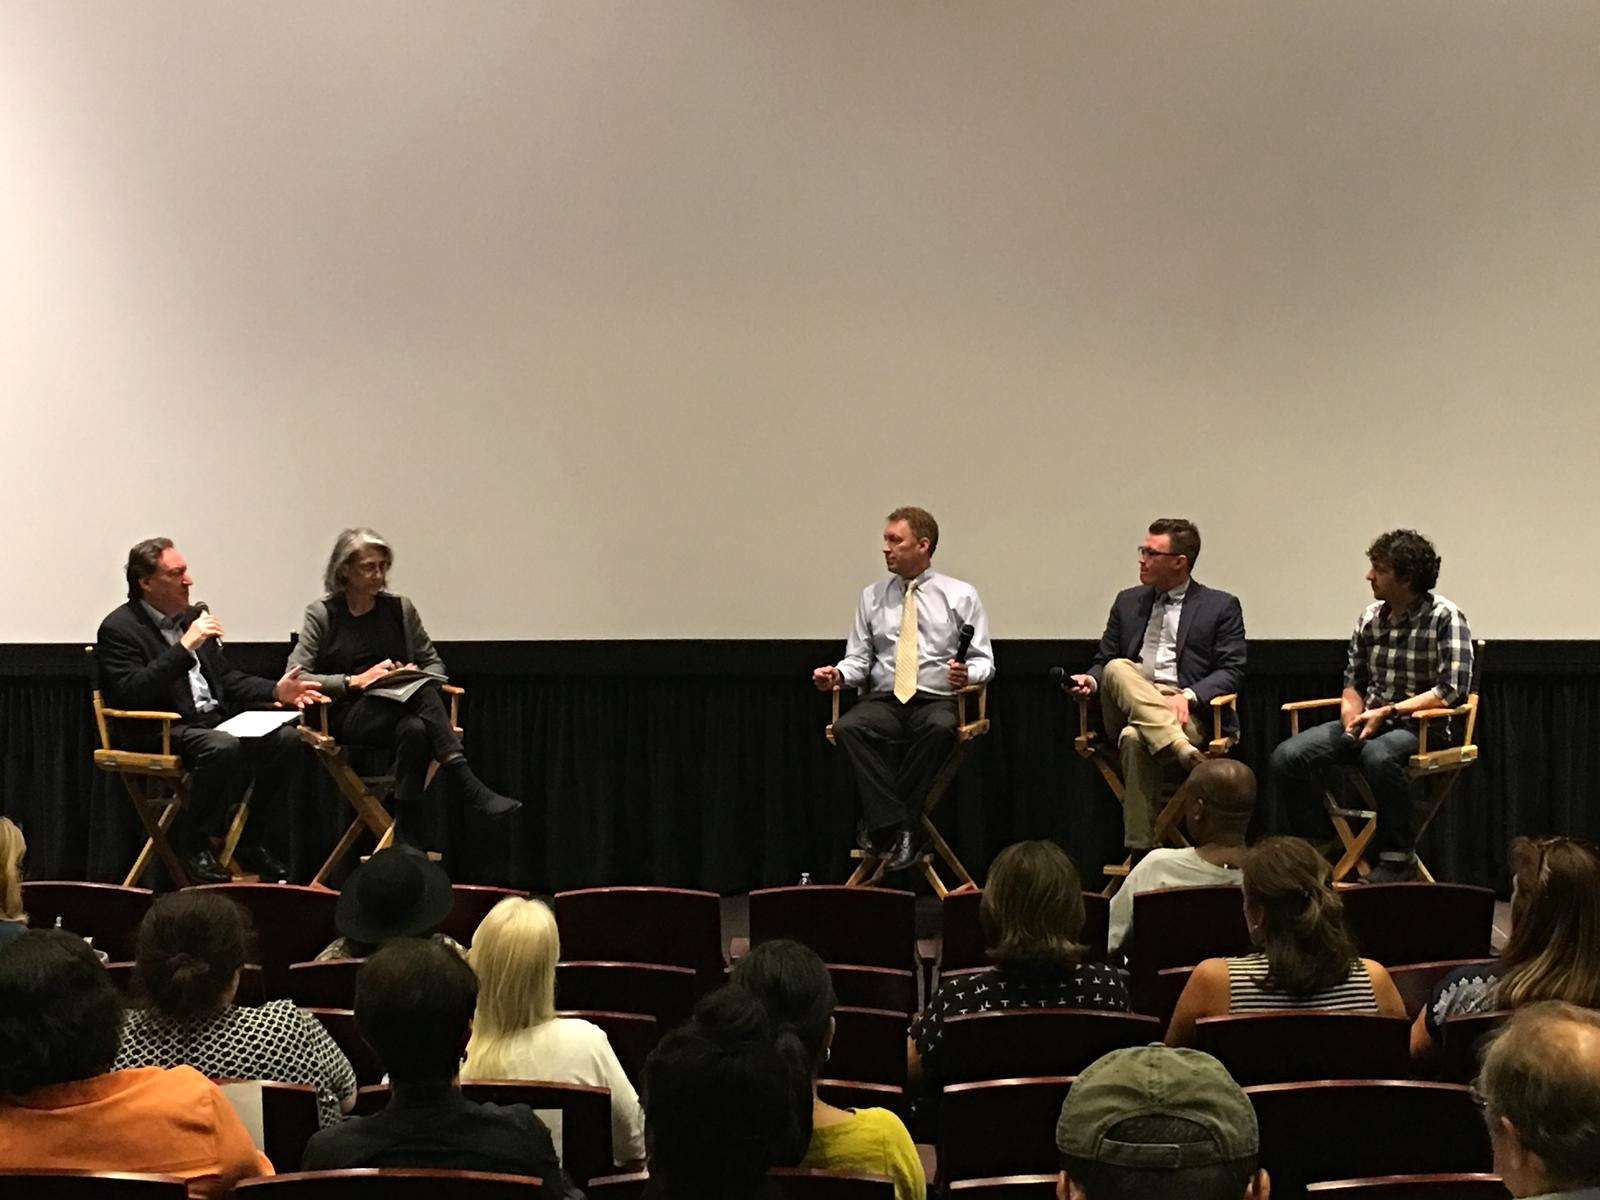 USC MISC & SAKS INSTITUTE -WALKING MAN PANEL DISCUSSION